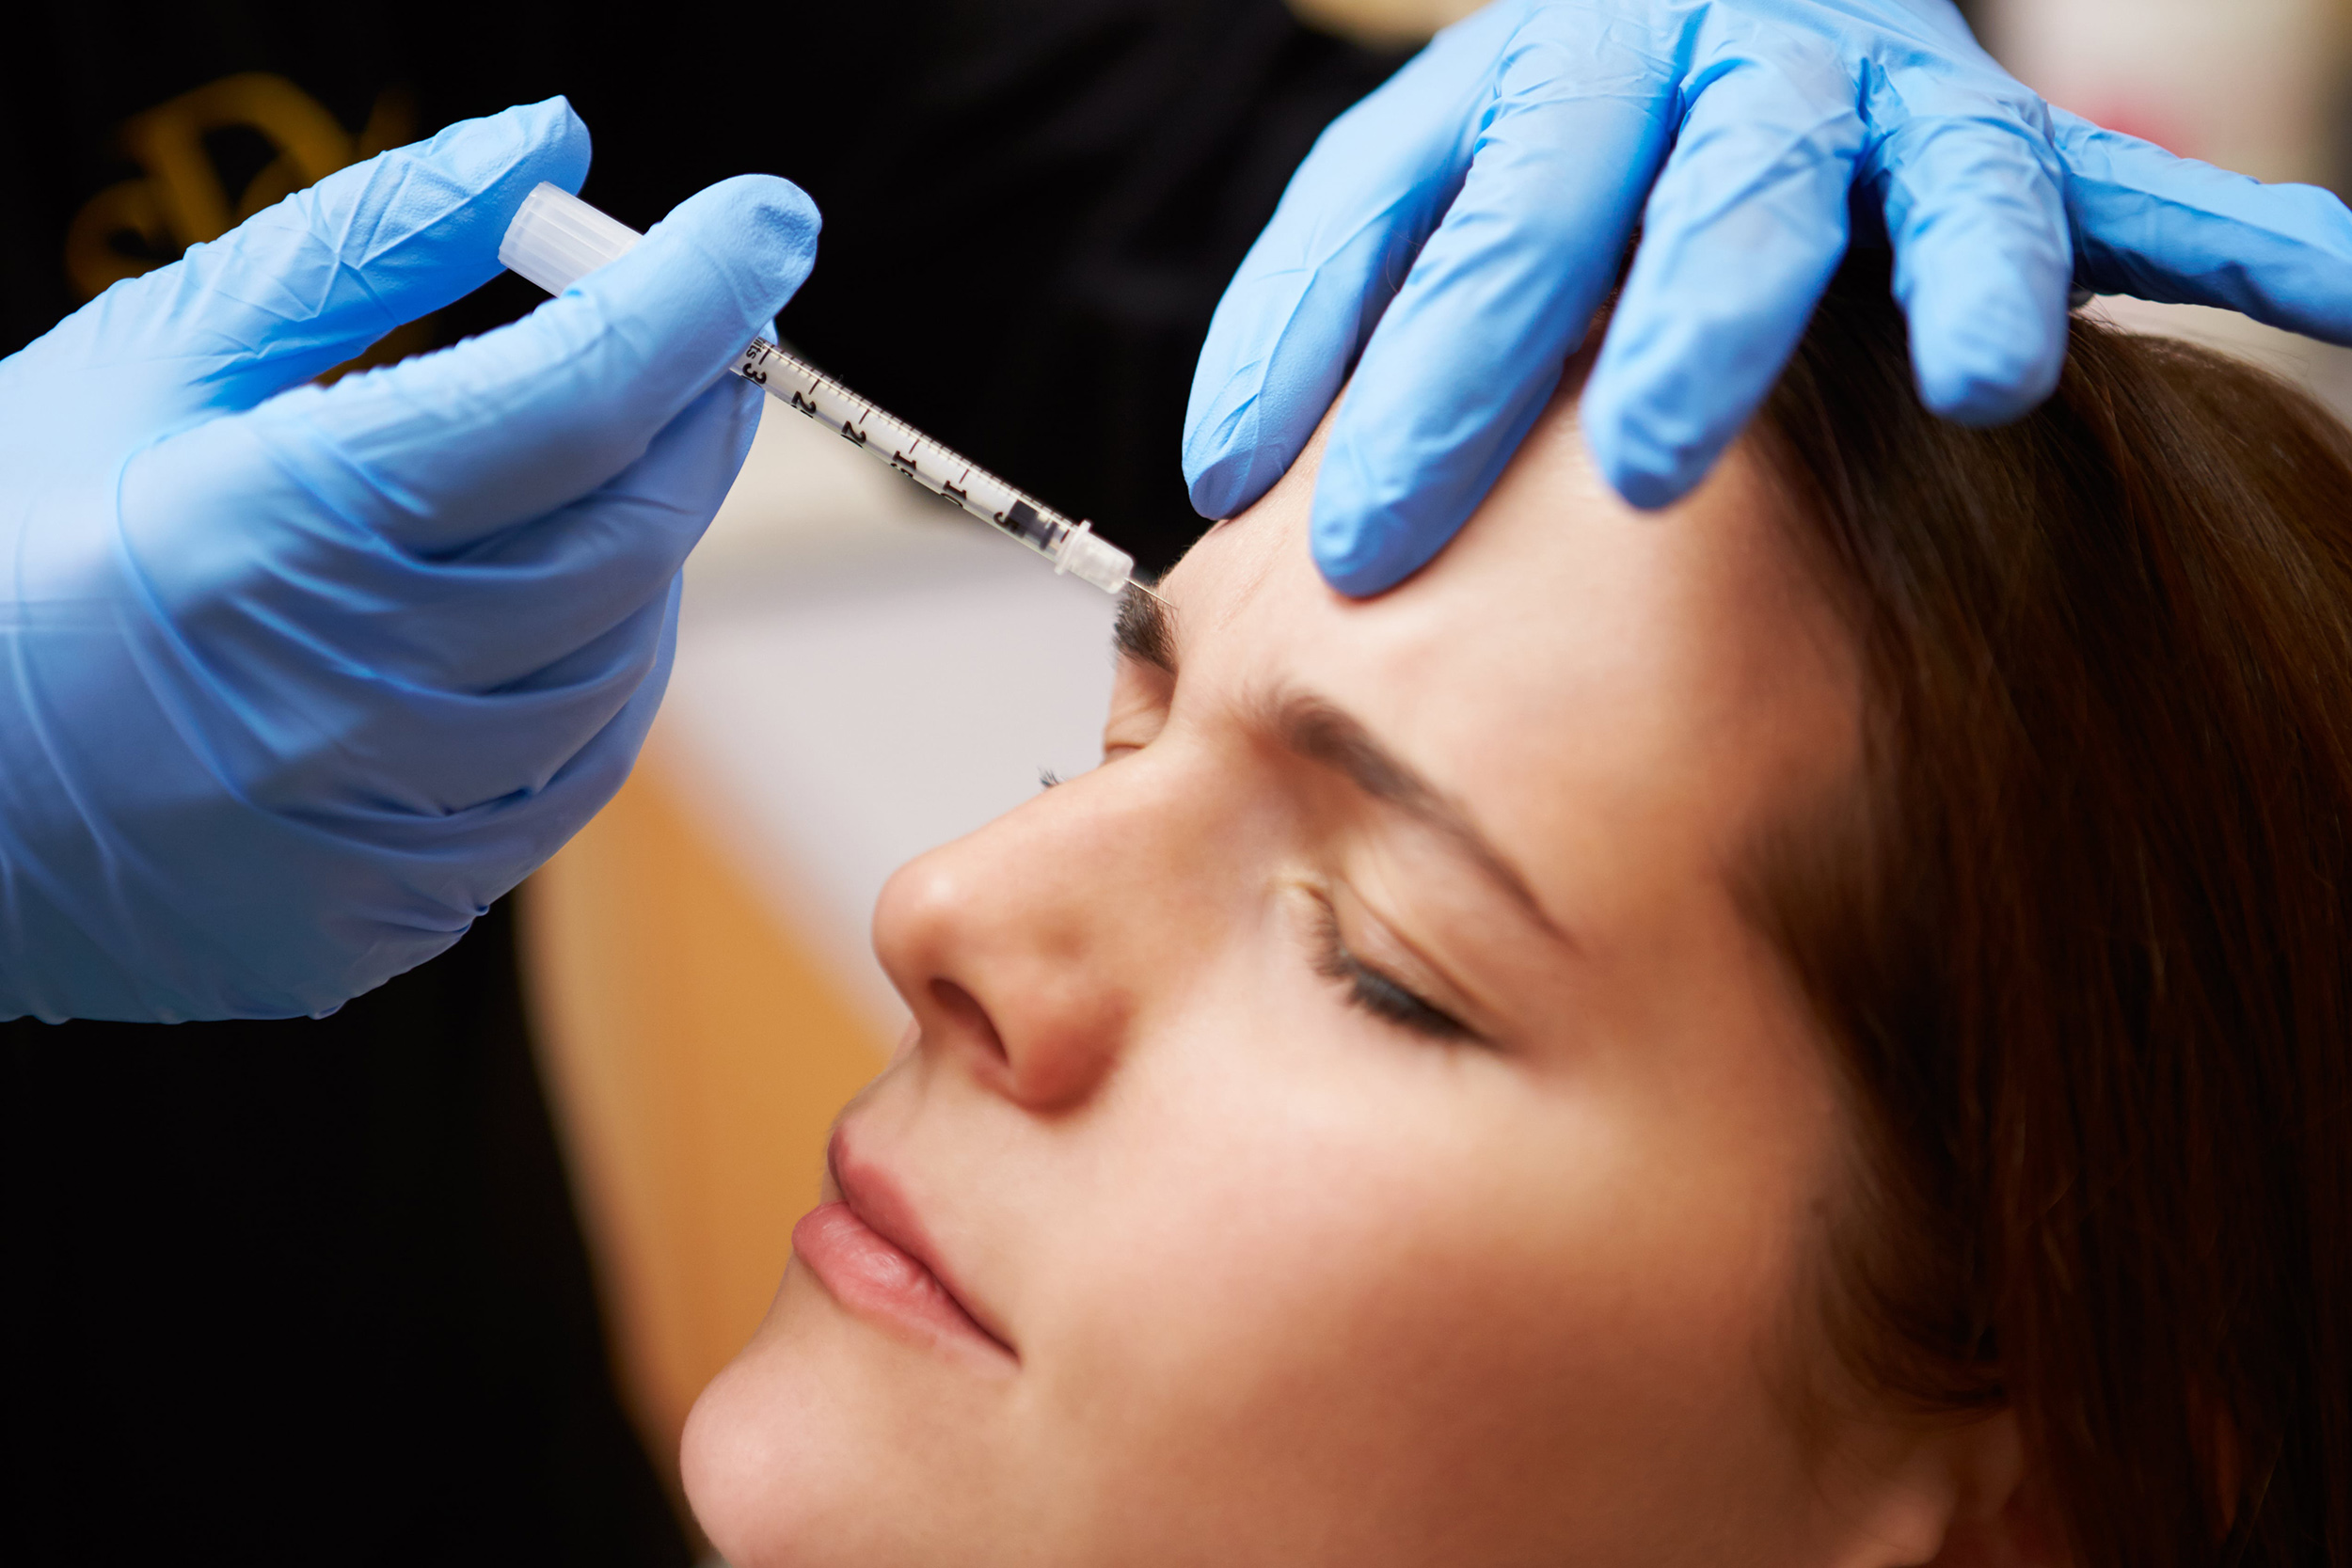 The Efficacy of Botox on Migraines